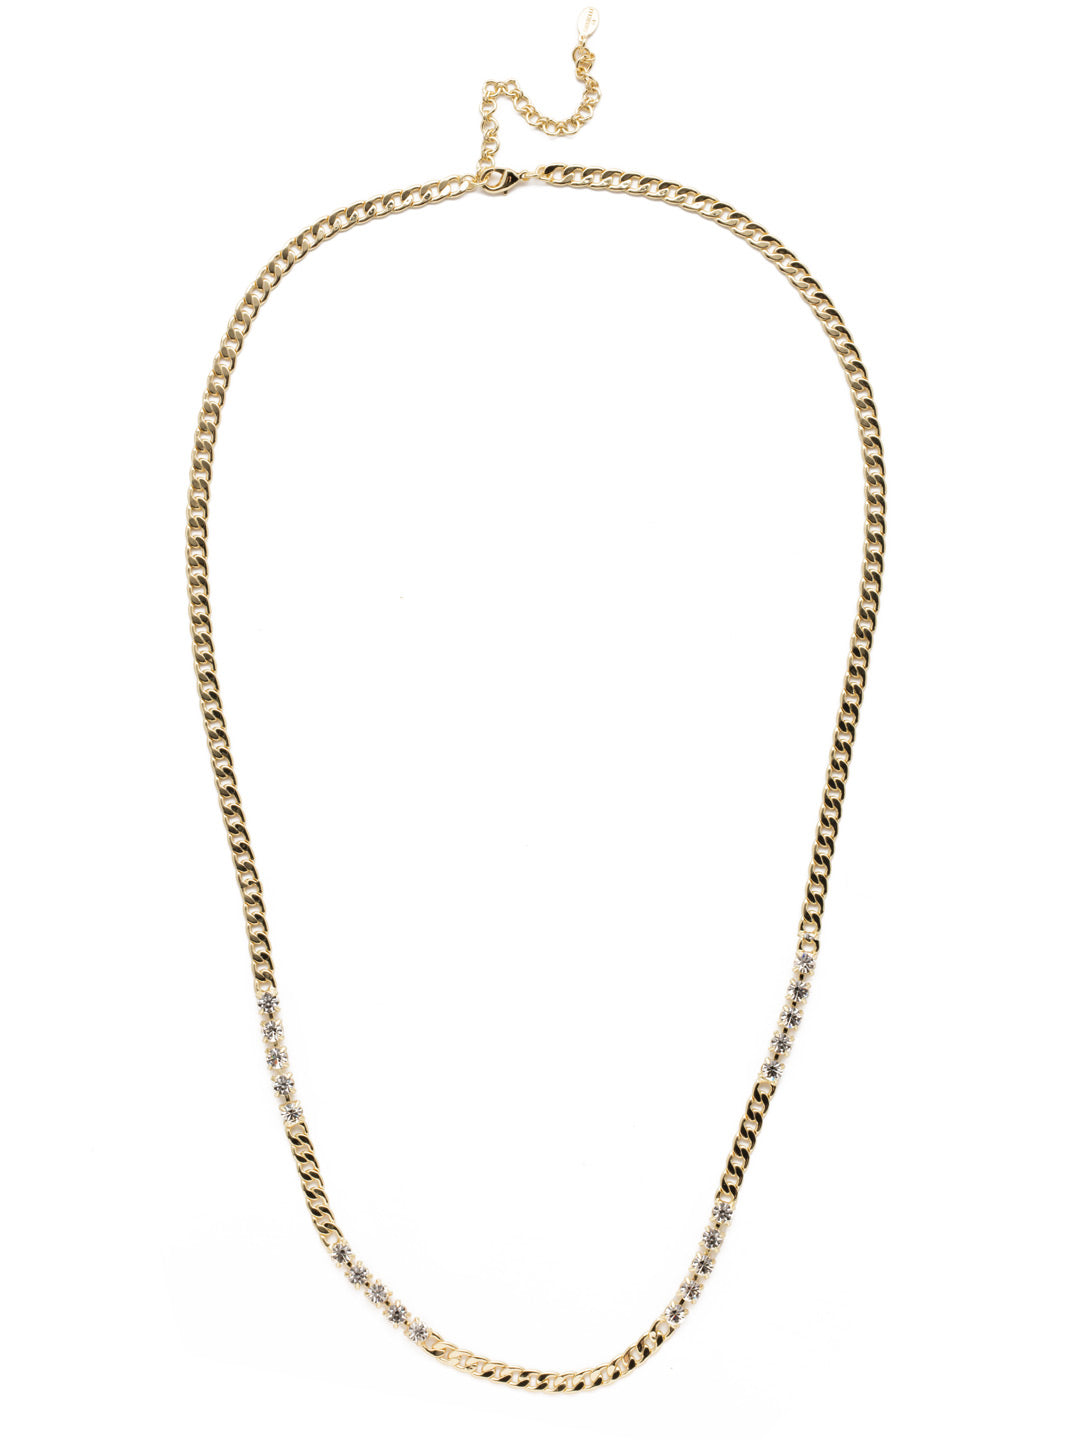 Alaia Crystal Long Necklace - 4NEK16BGCRY